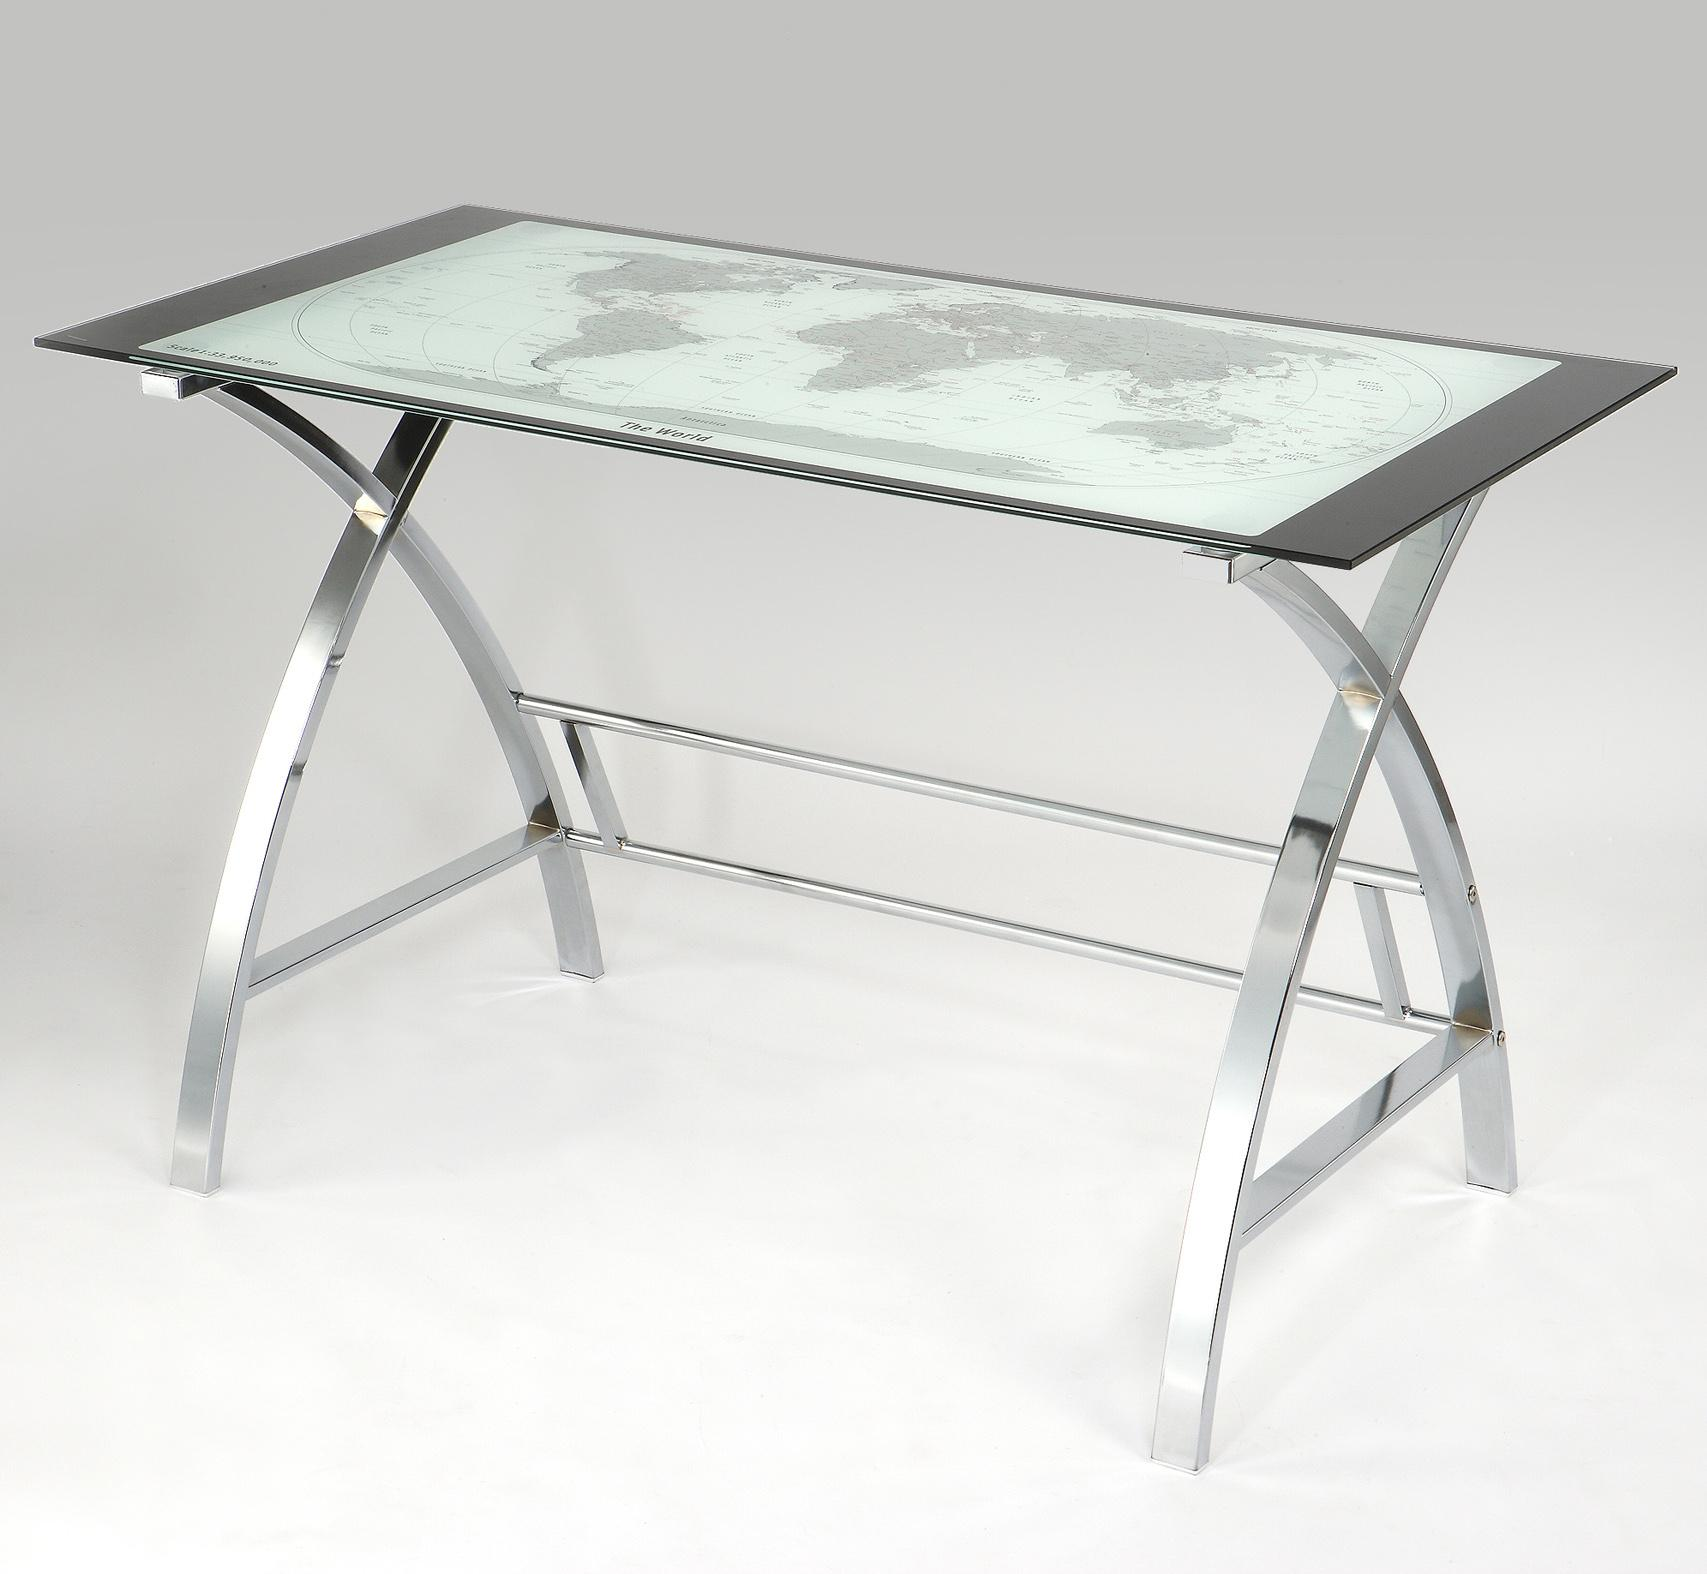 Accents World Map Desk by Powell at Bullard Furniture